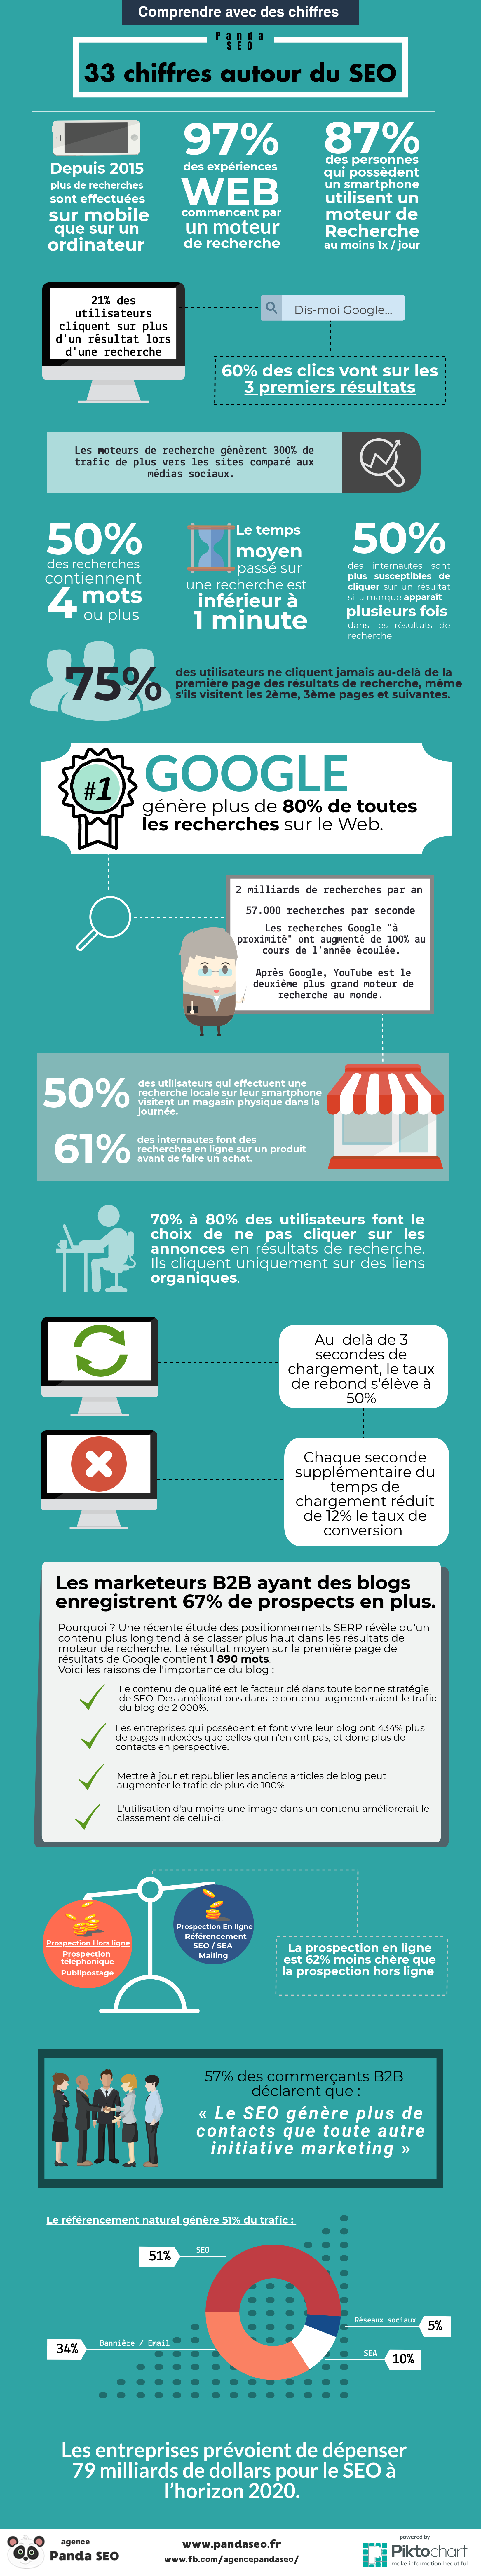 infographie-33-chiffres-seo